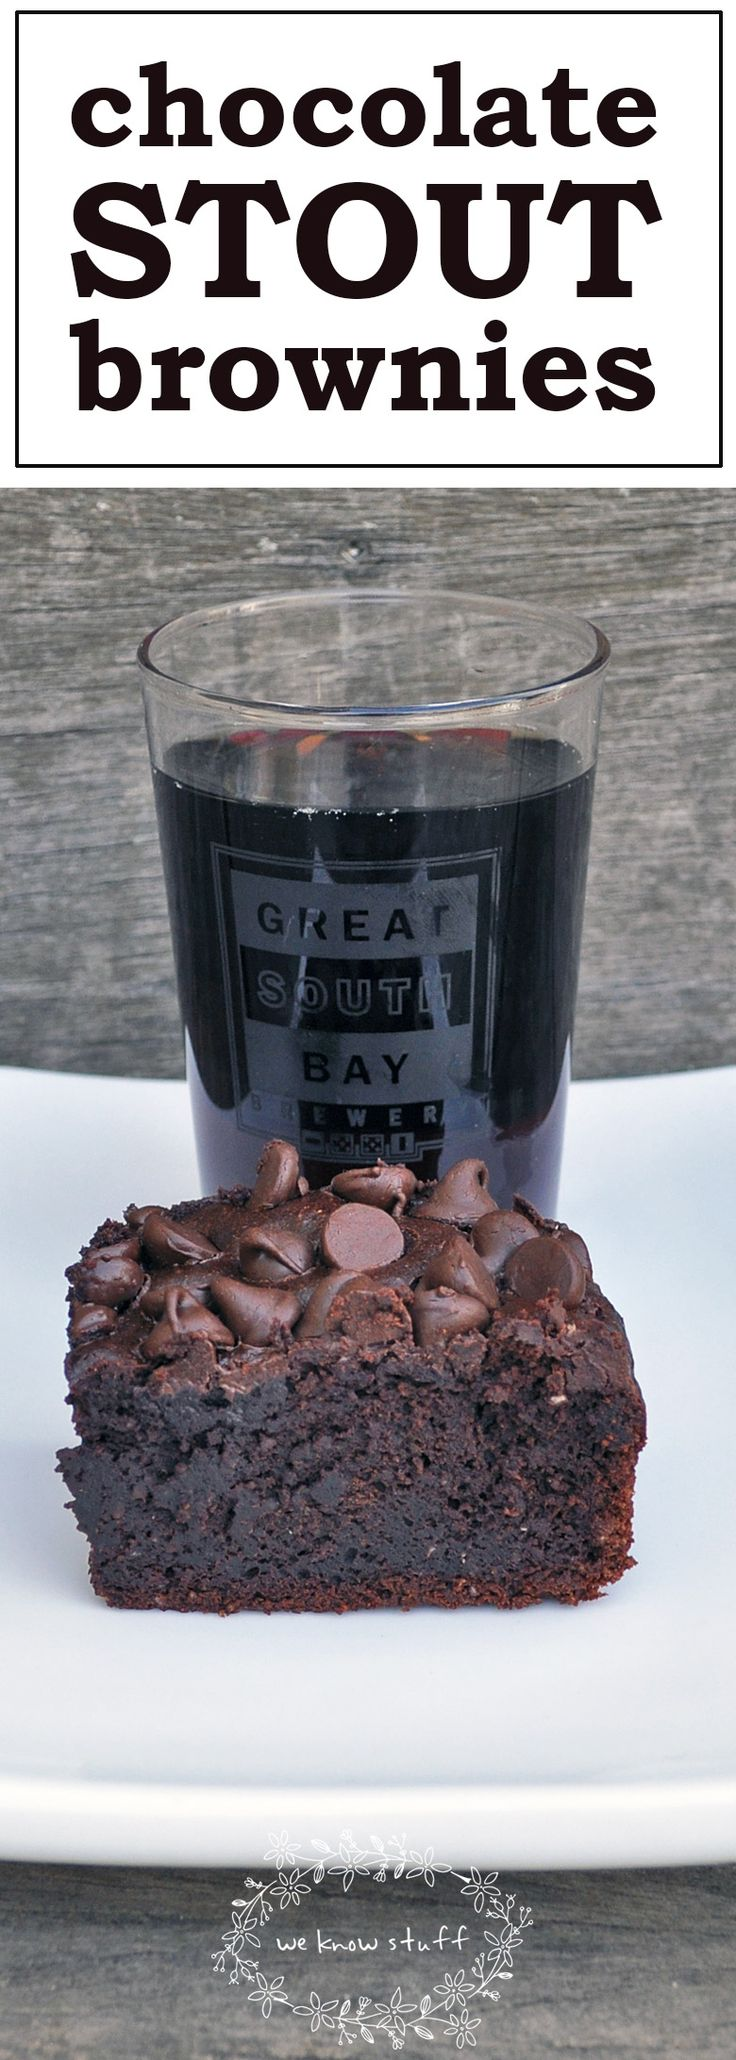 Did you know that you can bake with beer? Well, it's true – and the results are often delicious as seen with these chocolate stout brownies. They're perfect for Saint Patrick's Day!